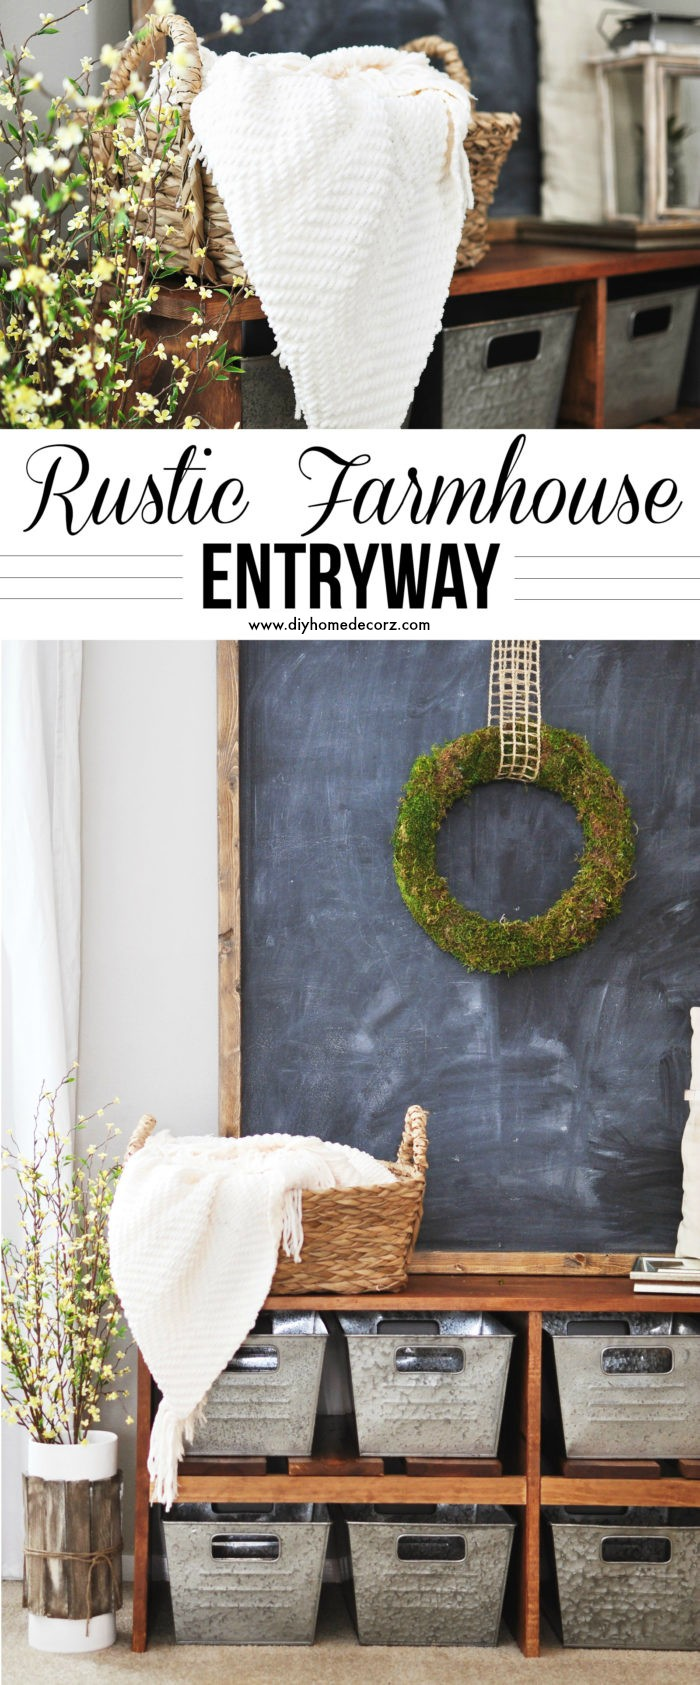 Rustic Farmhouse Entryway 2 DIY Home Decor Projects To Make Your Home Cute